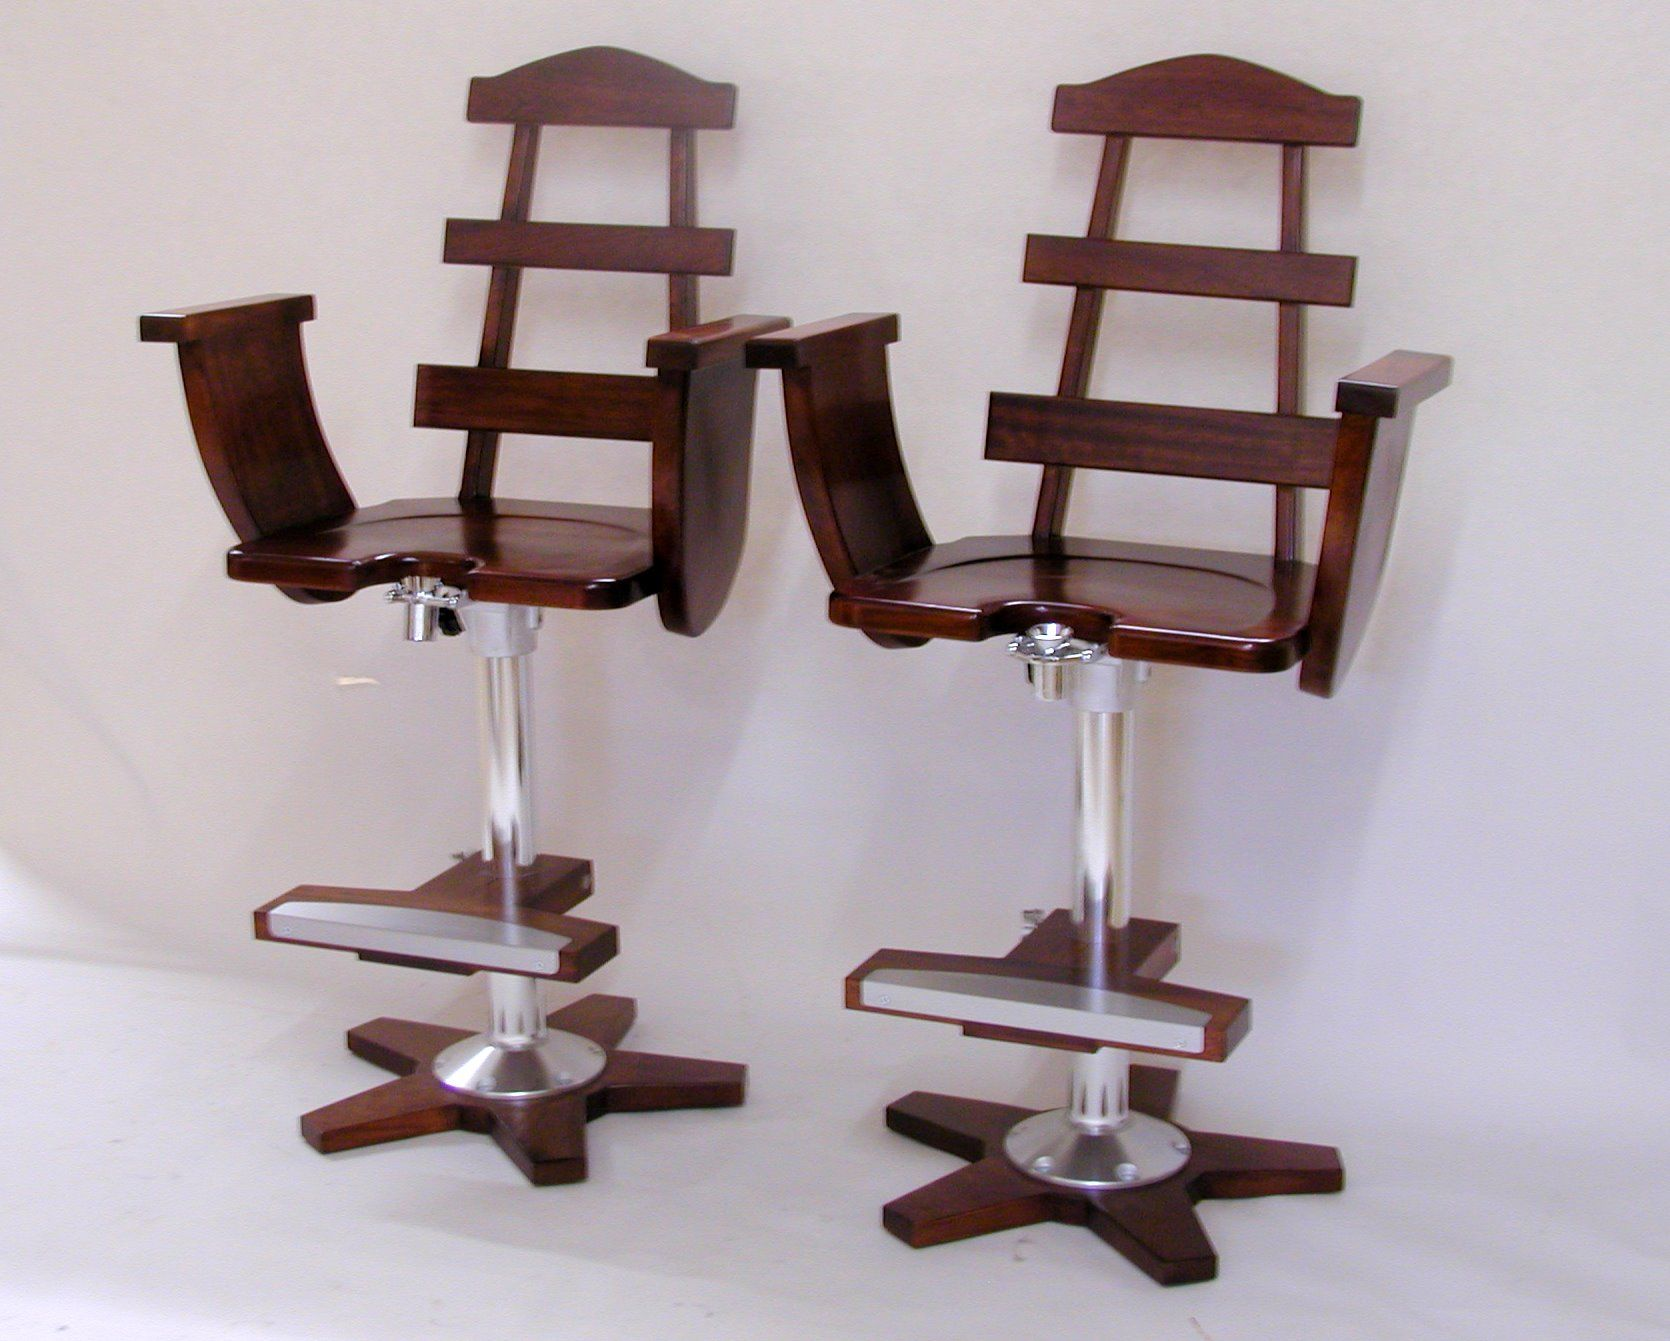 Pleasant These Thomasville Hemingway Fighting Chairs Are Quite Fun Pdpeps Interior Chair Design Pdpepsorg